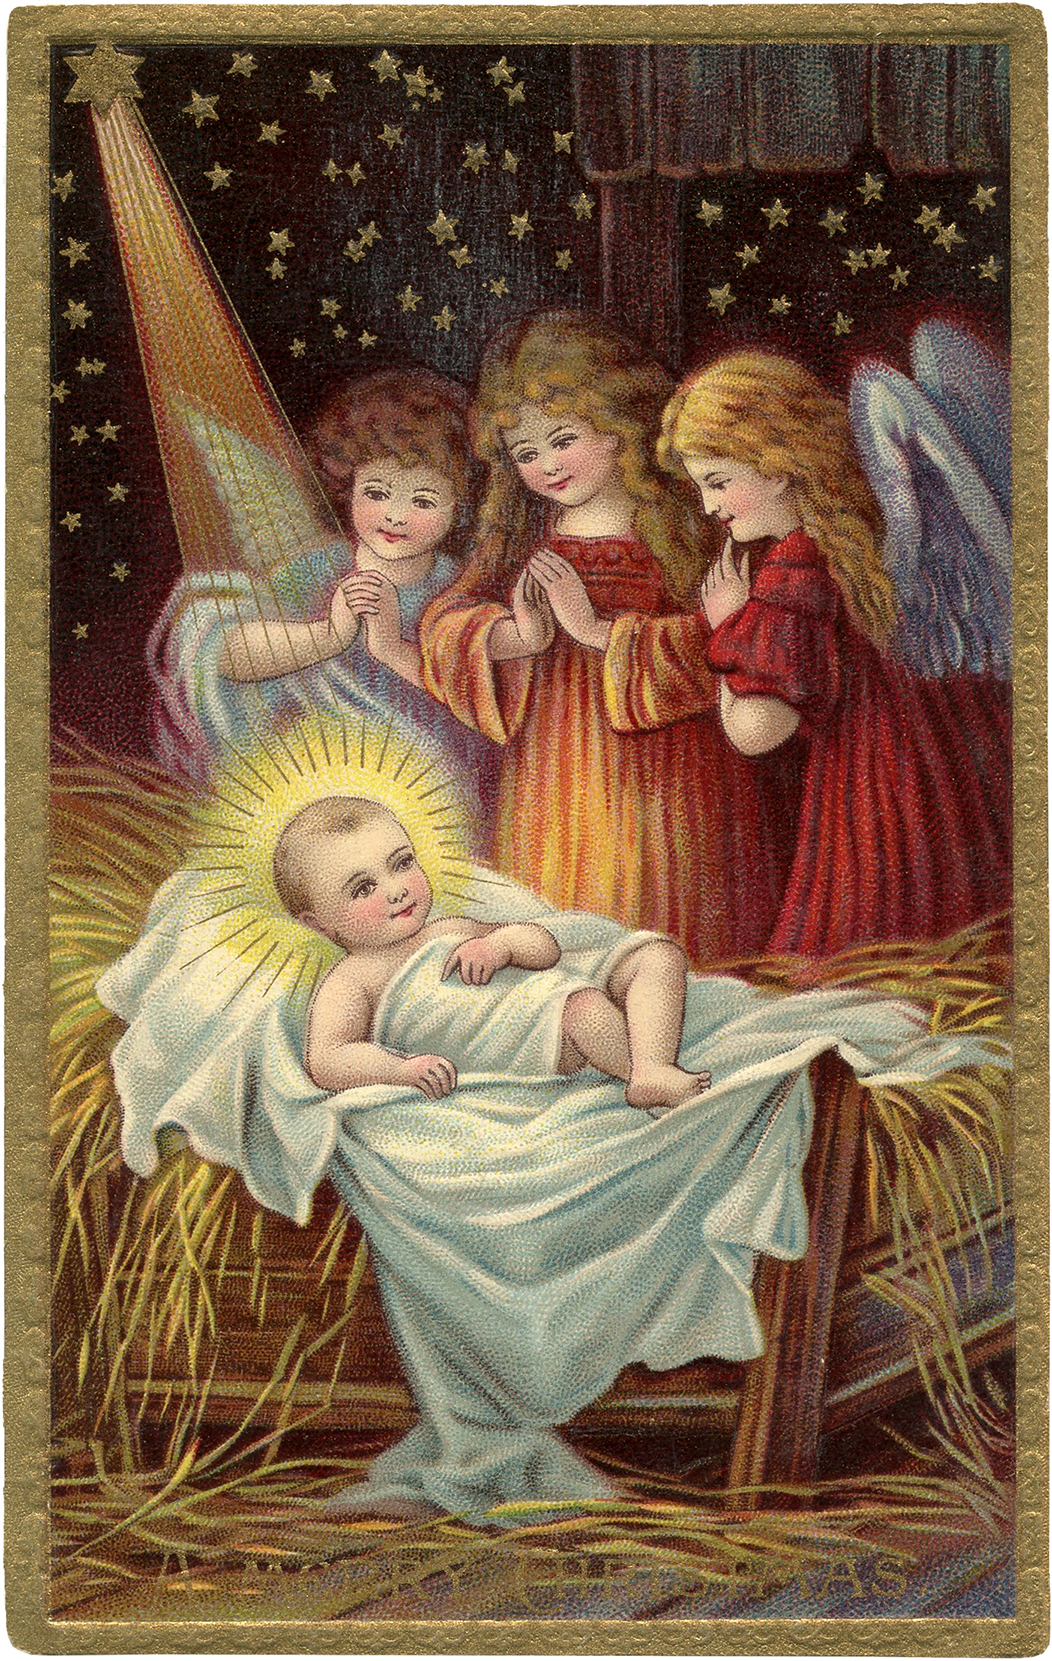 Wonderful Christmas Baby Jesus Image! - The Graphics Fairy | 1052 x 1661 jpeg 2013kB